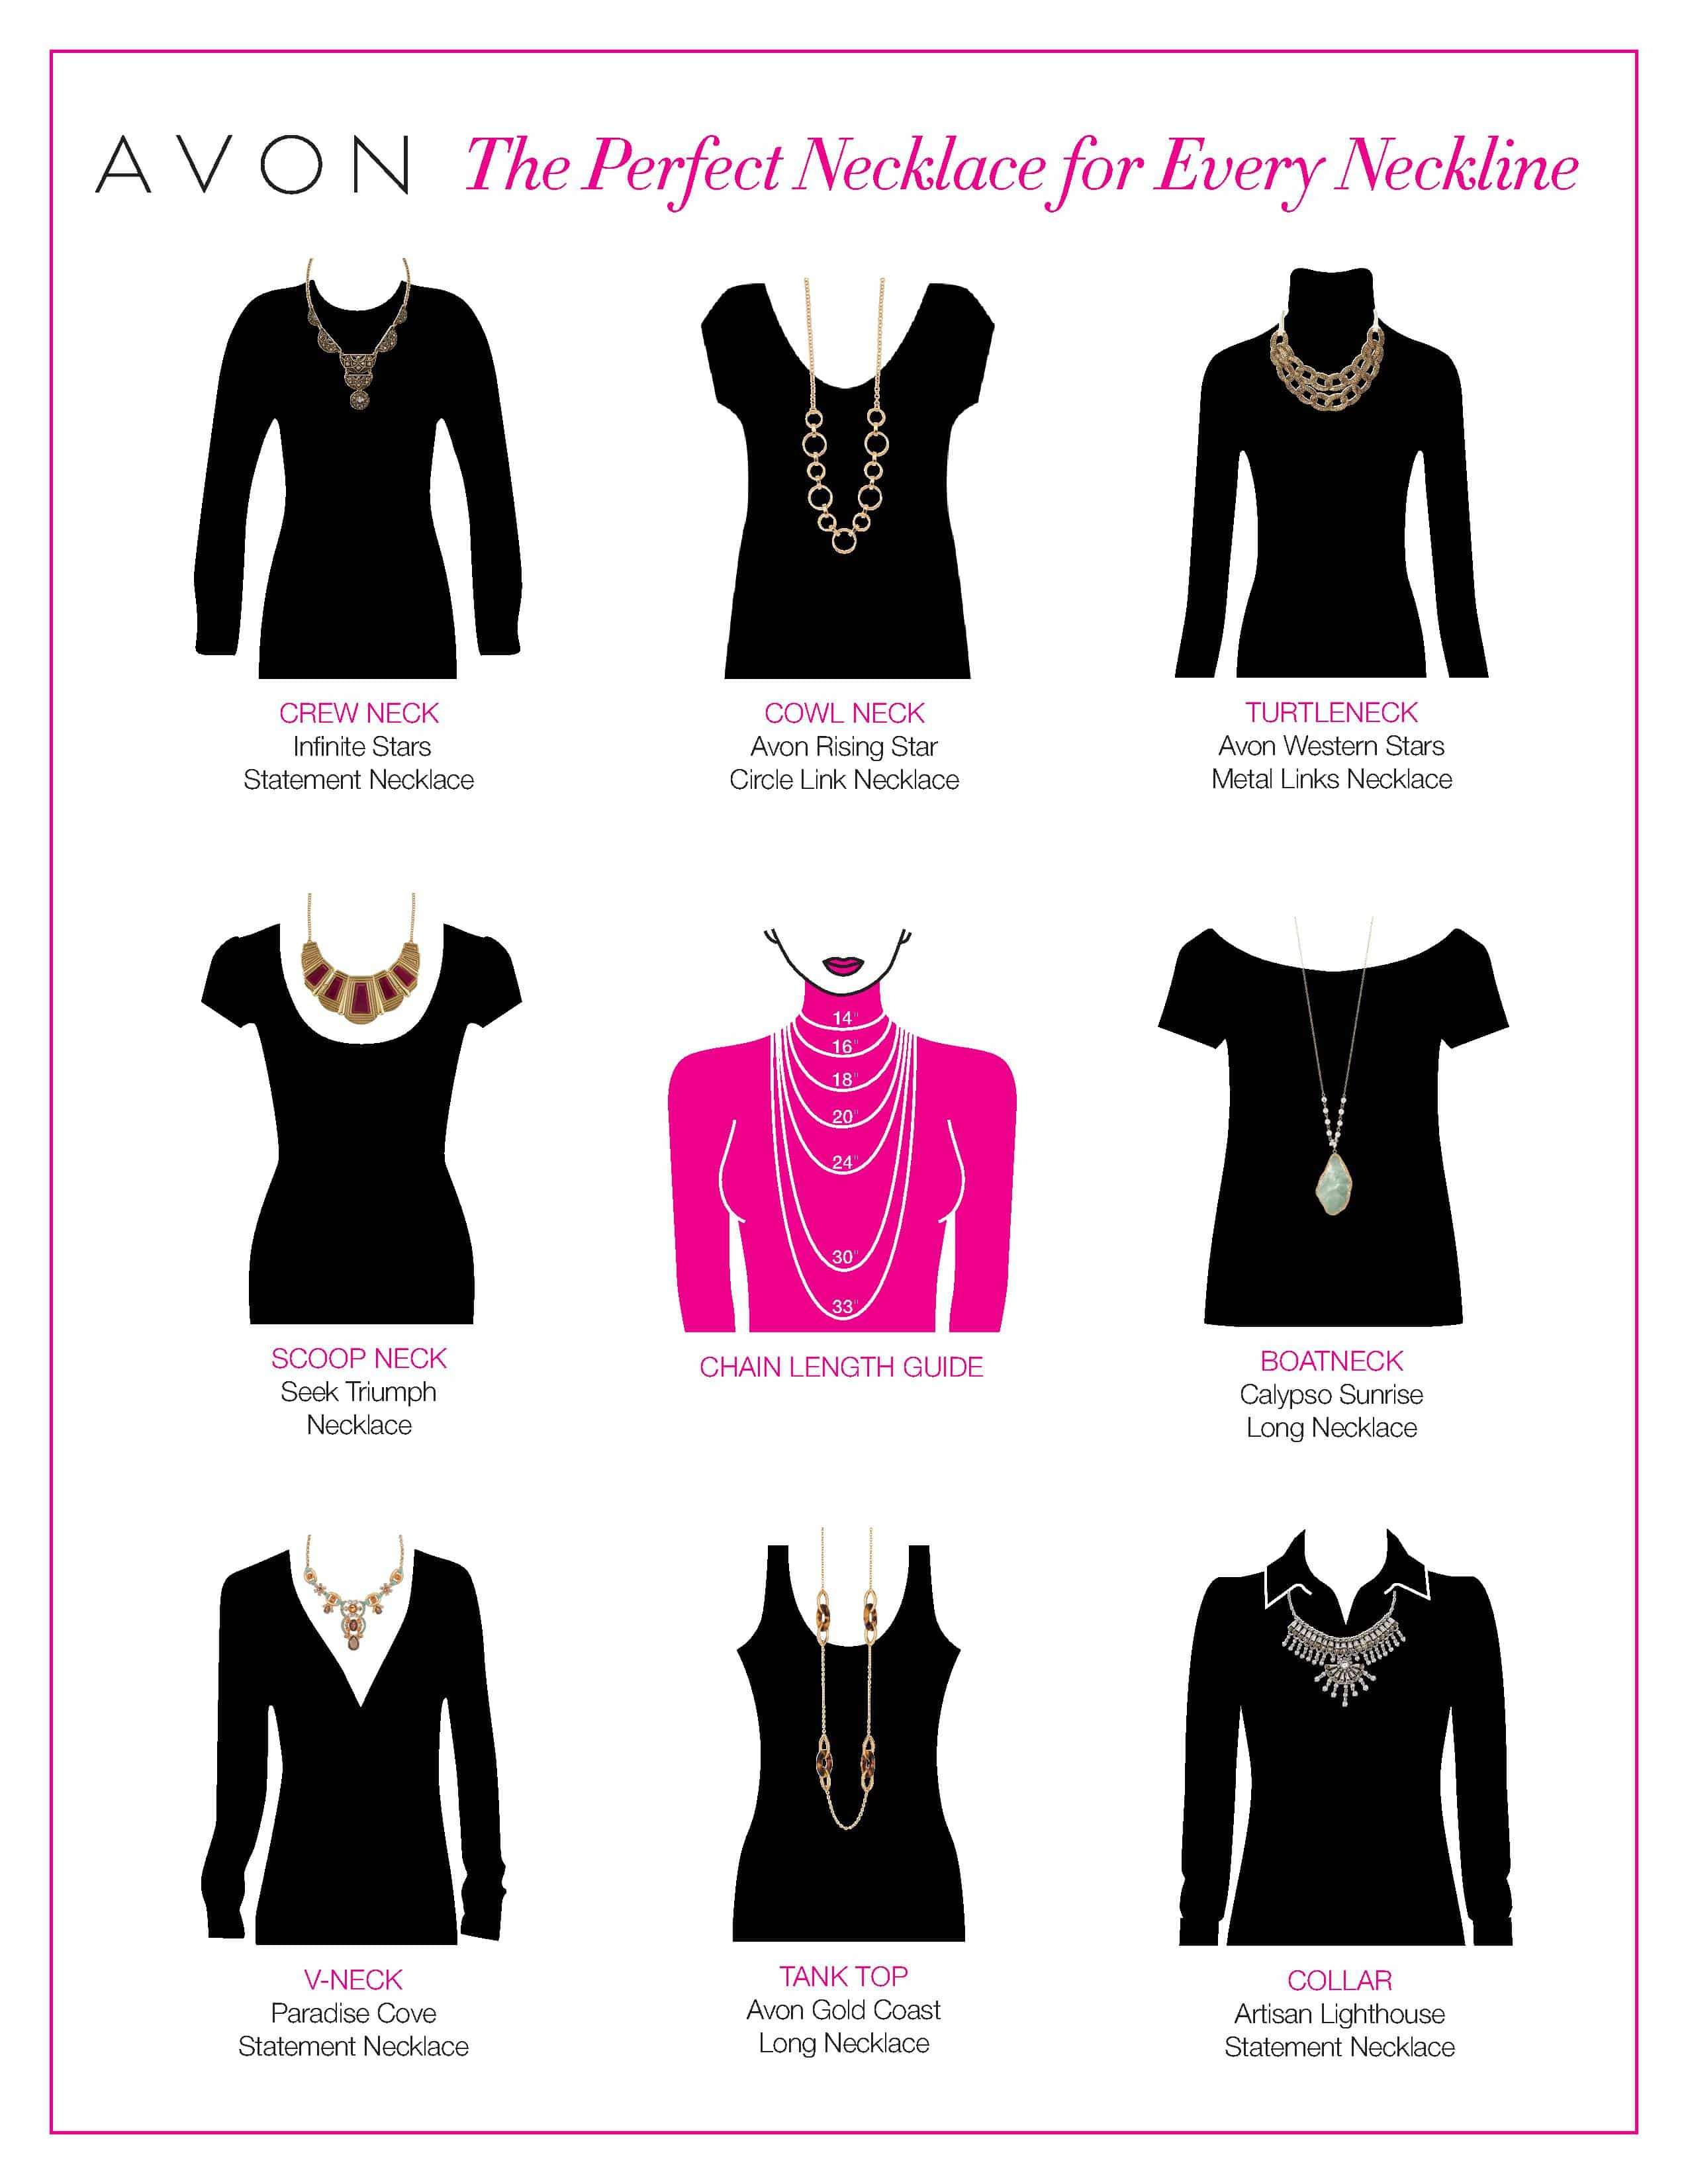 AvonJewelryPerfectNecklace